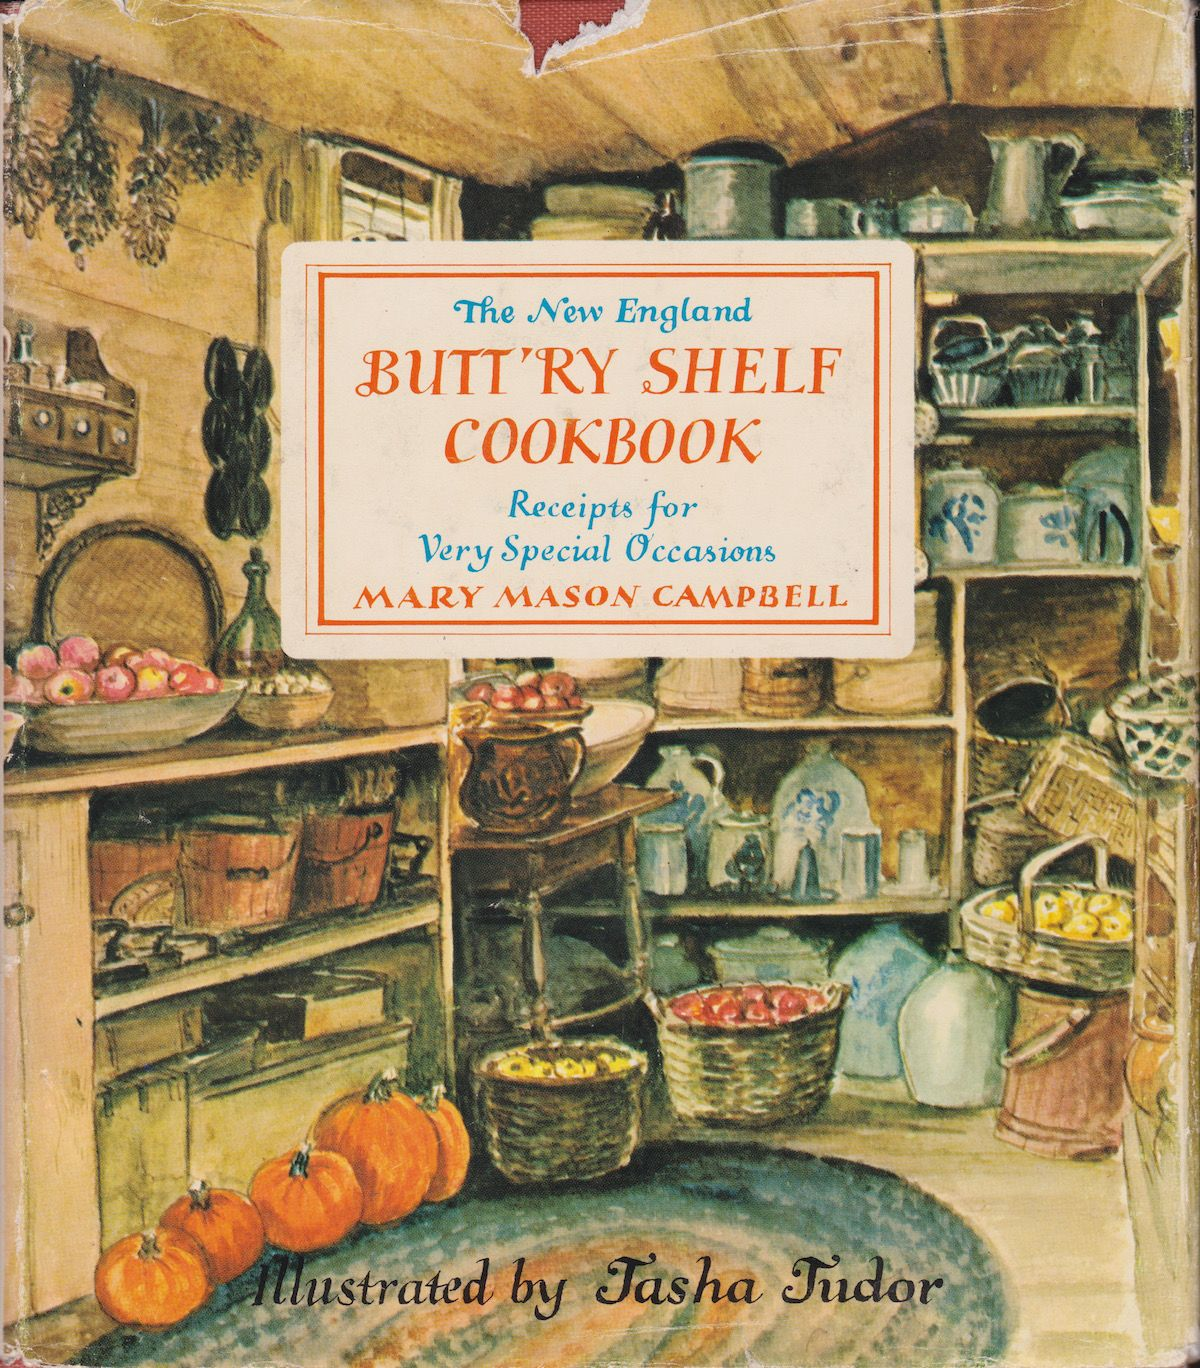 buttry-shelf-cookbook-cover